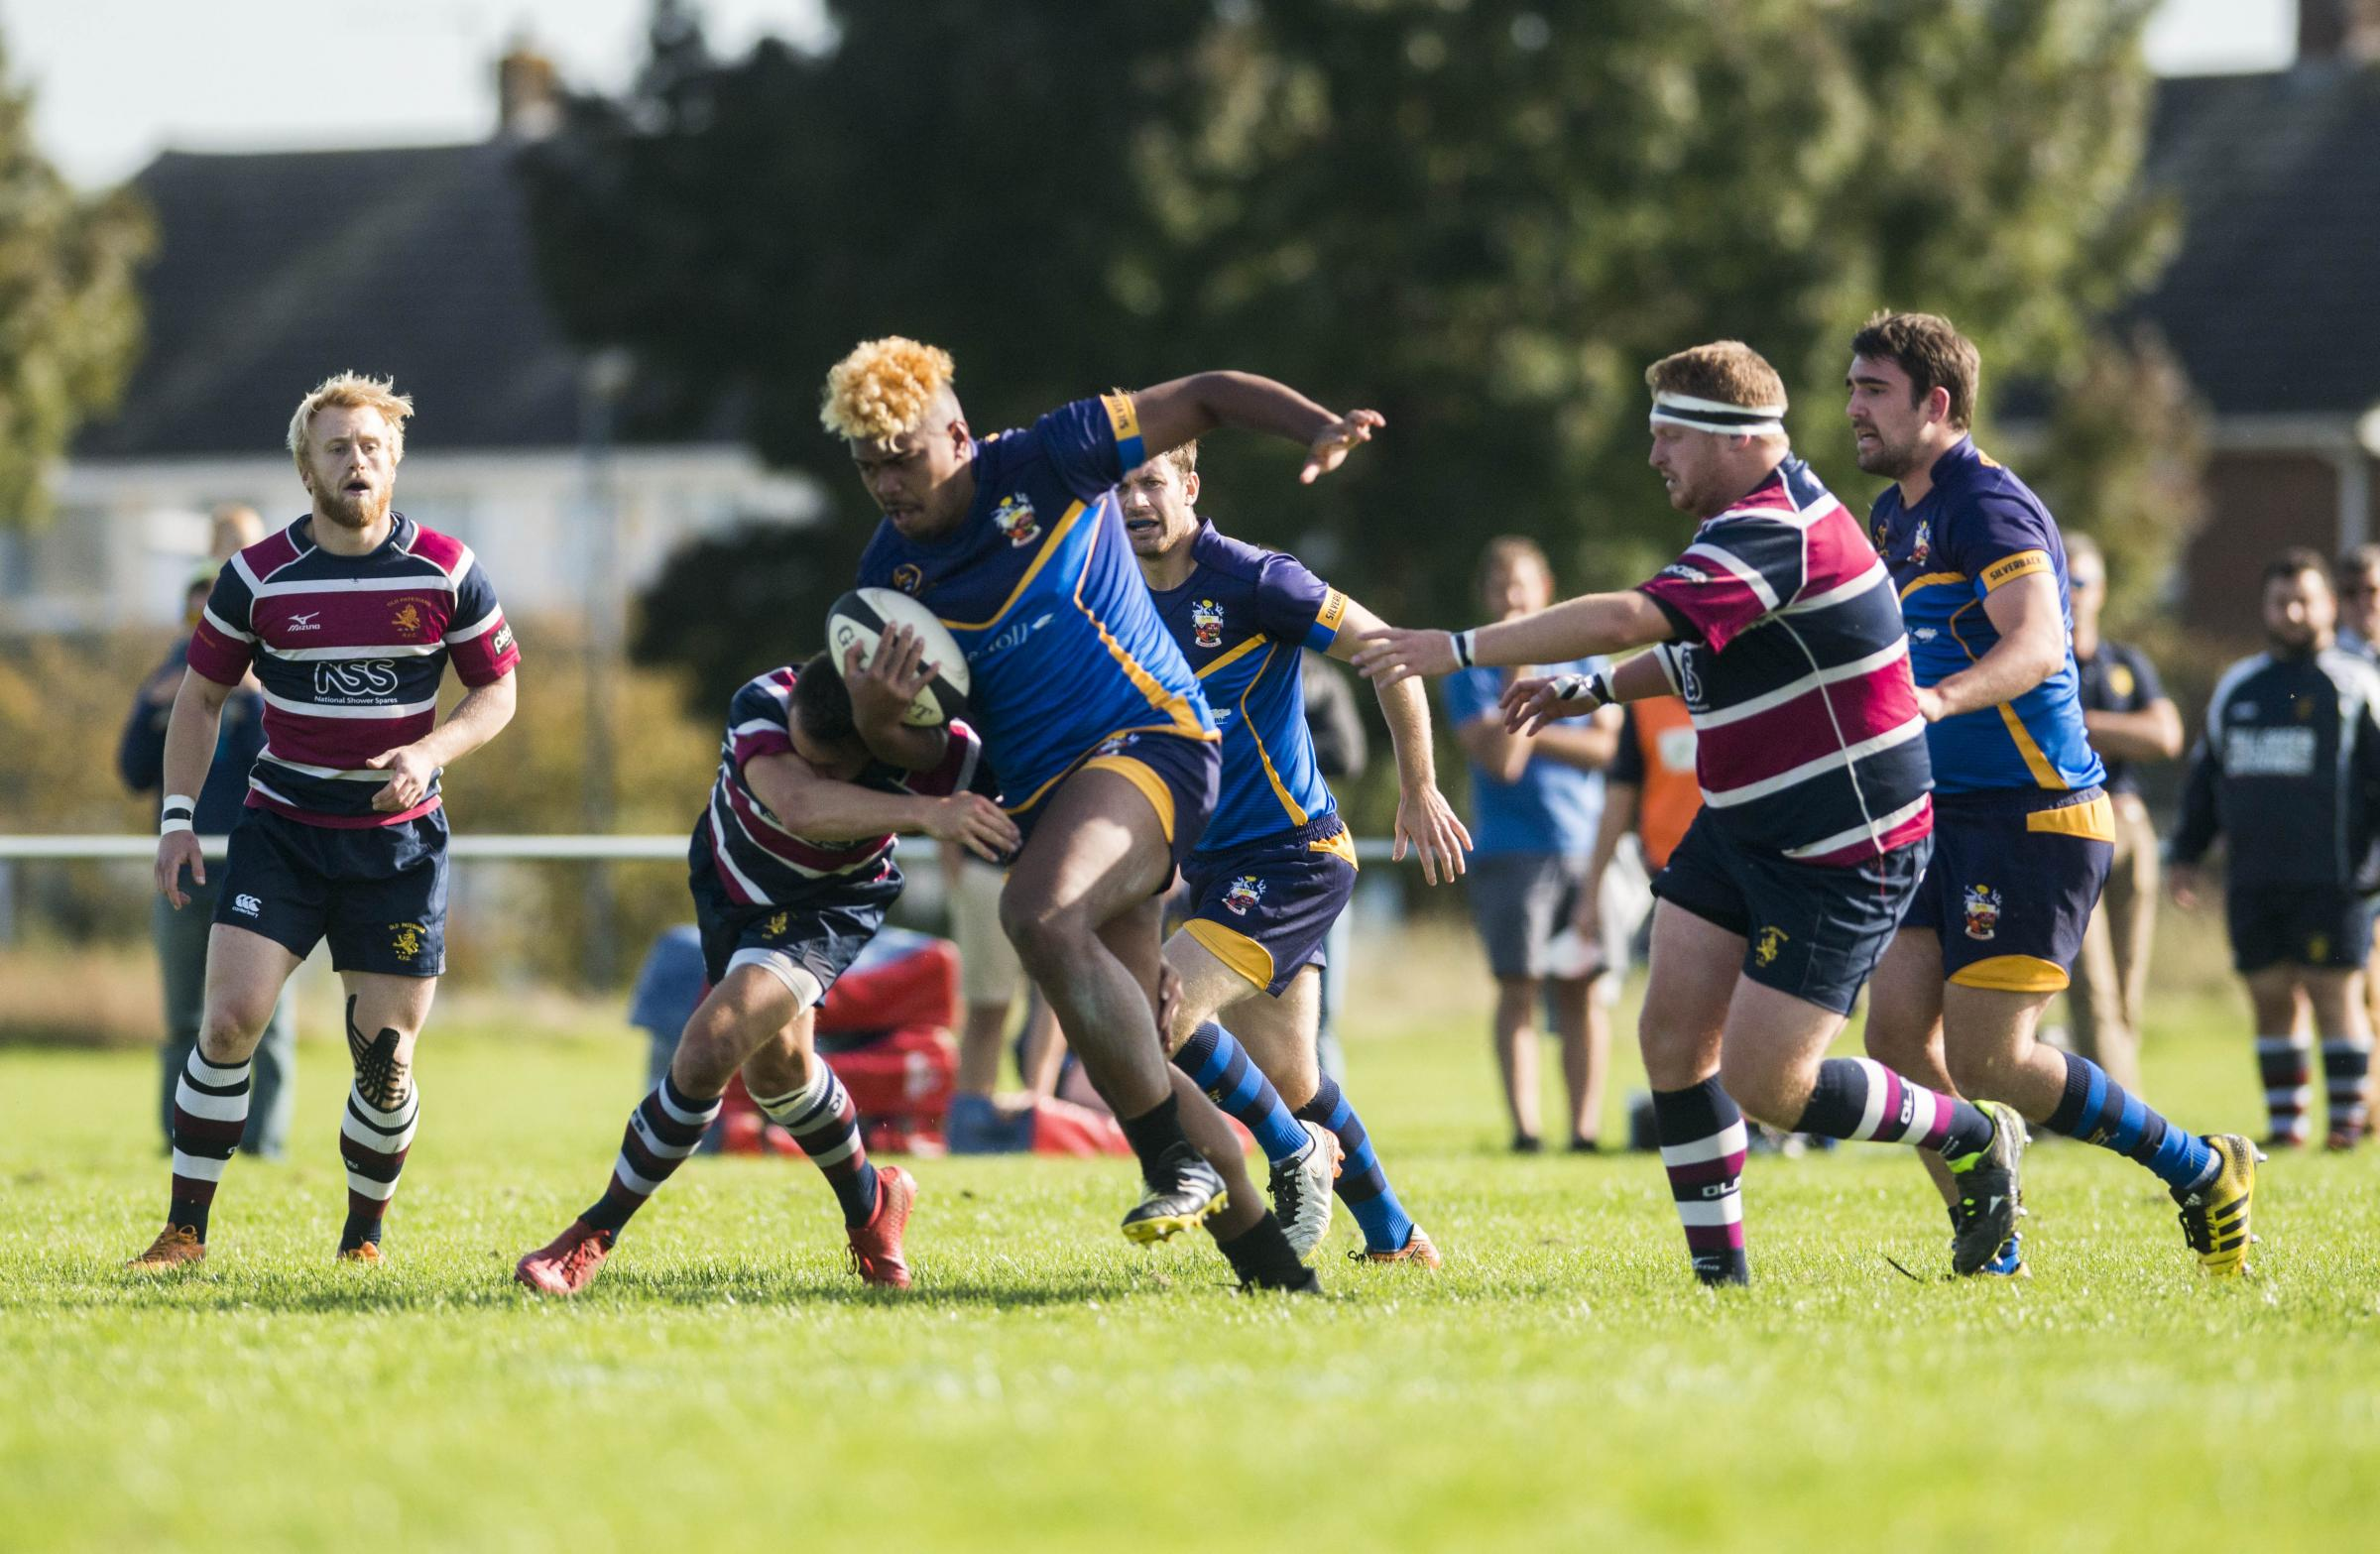 Swindon's Sonny Naiova on the charge against Old Patesians on Saturday (Picture: CLARE GREEN)